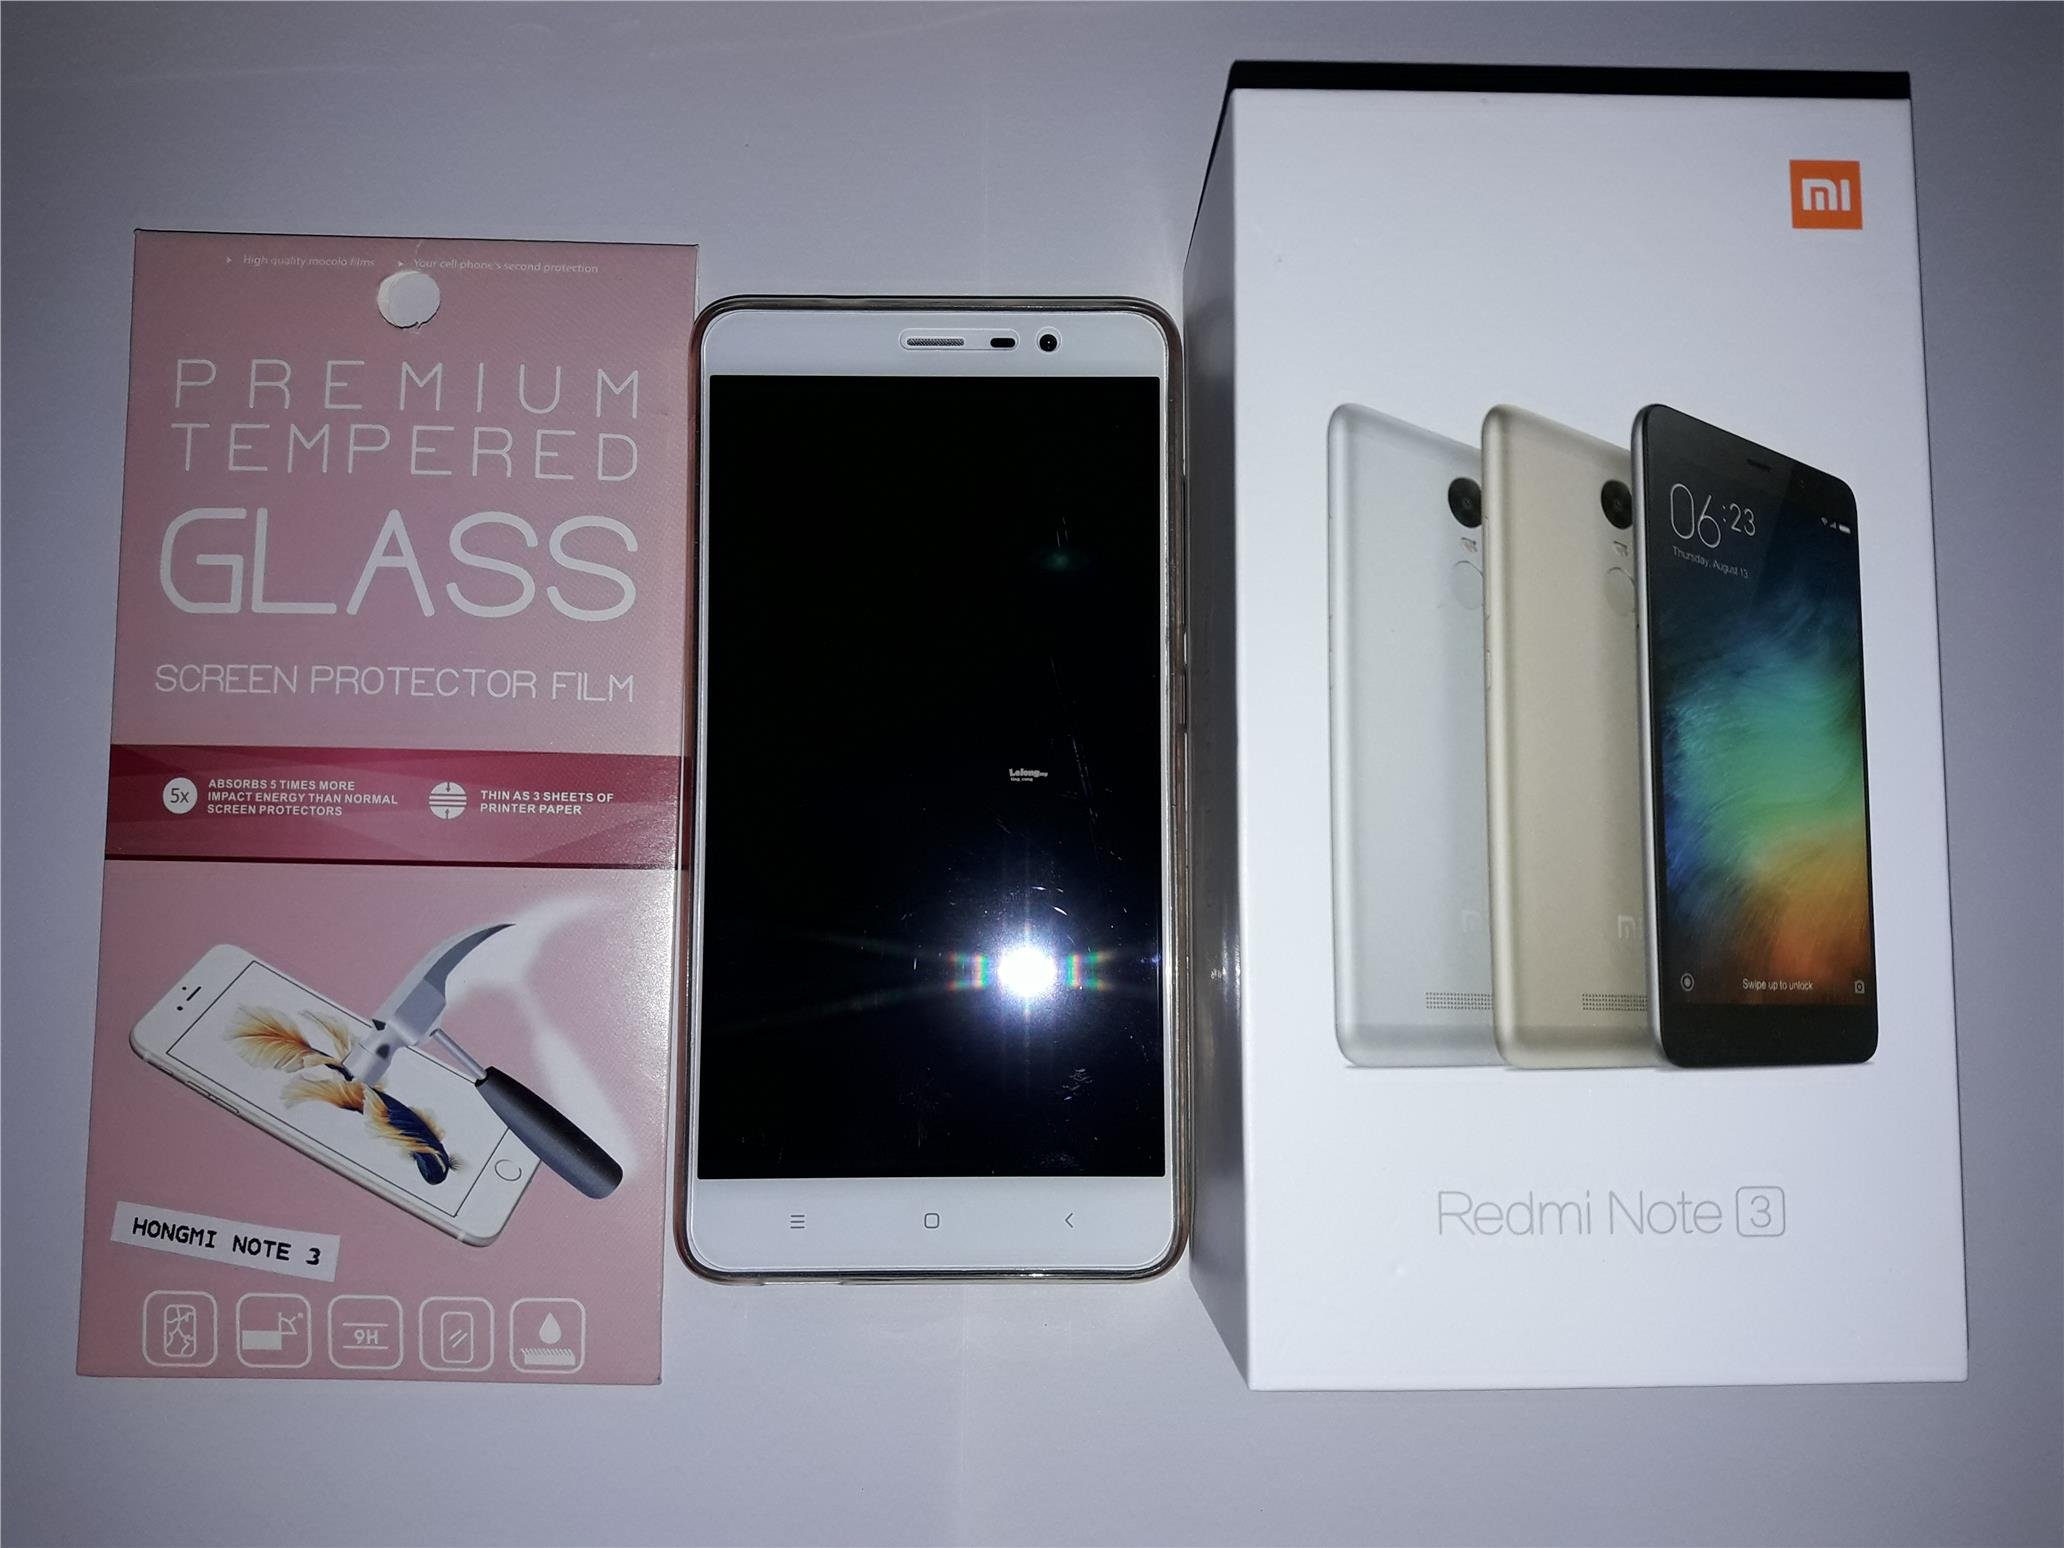 FOR SALE: XIAOMI REDMI NOTE 3 16GB (XIAOMI MALAYSIA WARRANTY) [USED]